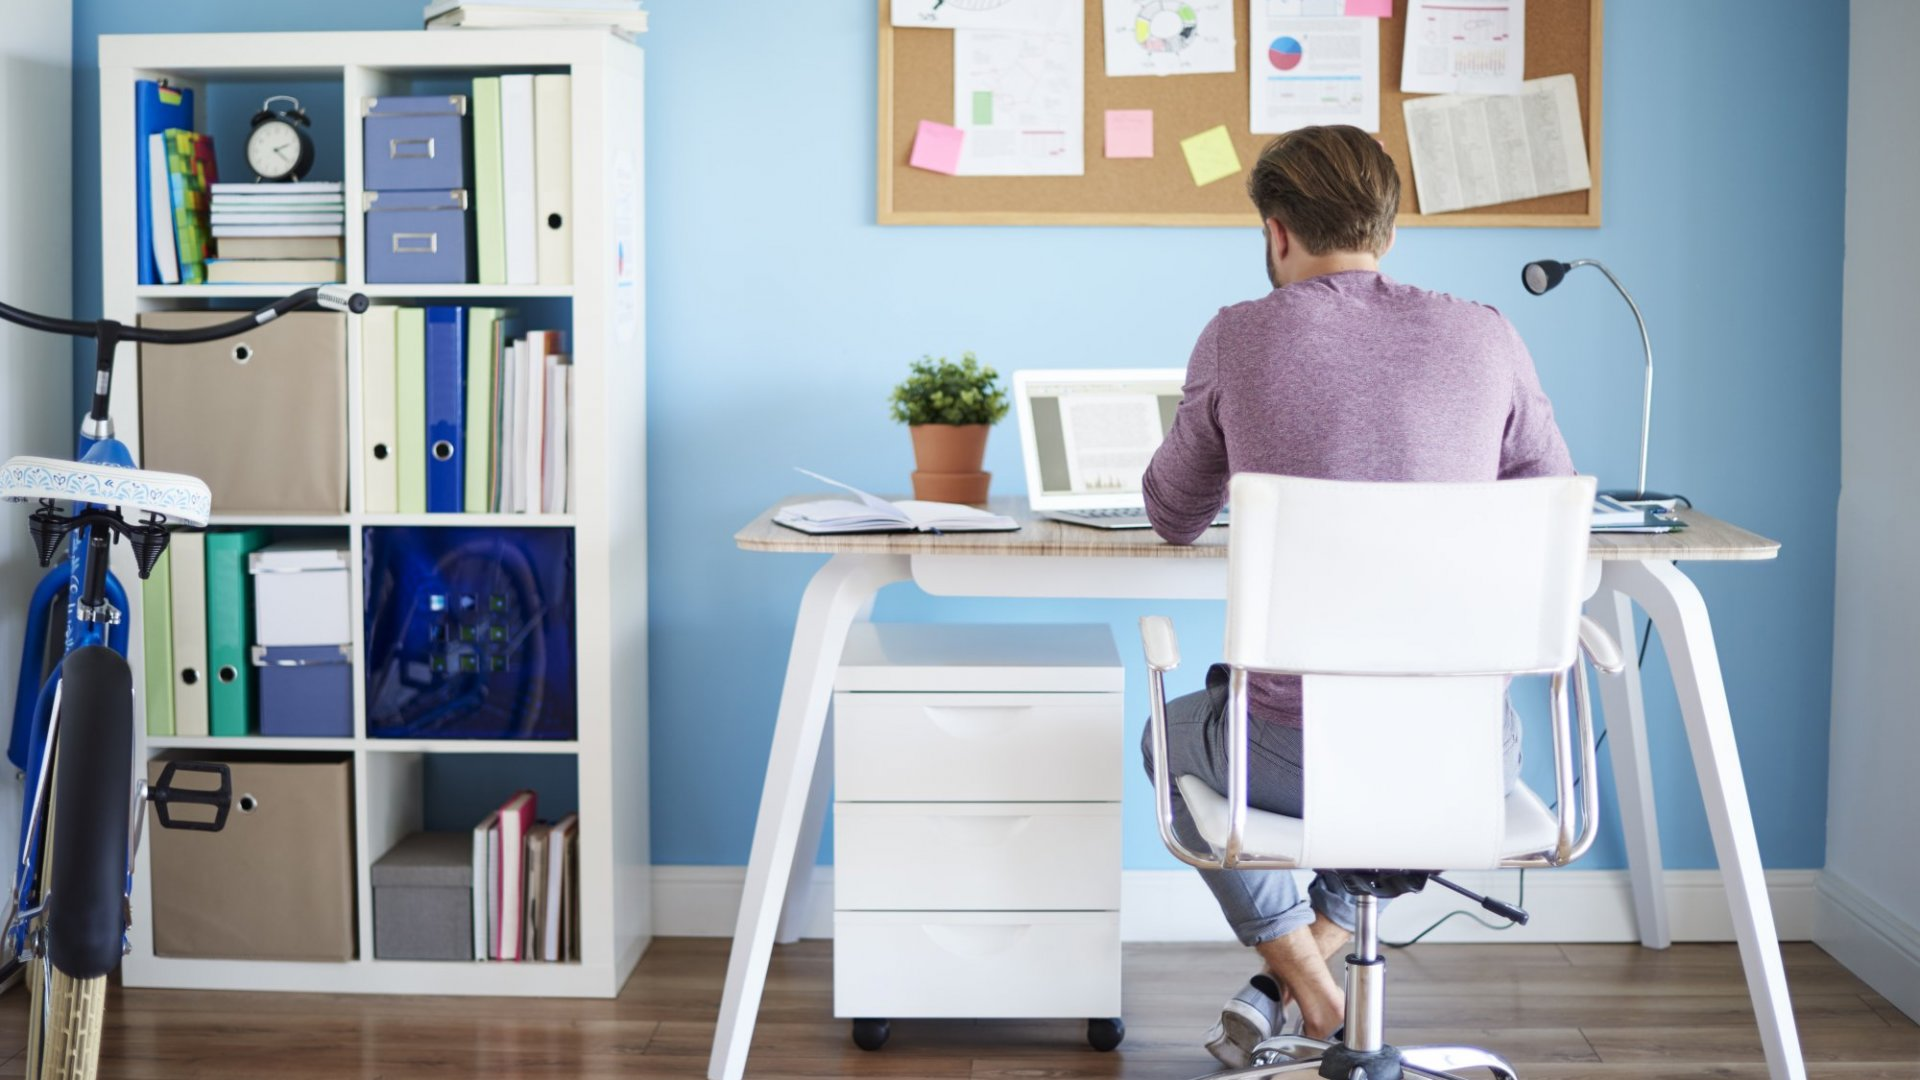 The Truth About Working From Home: 5 Things No One Tells You